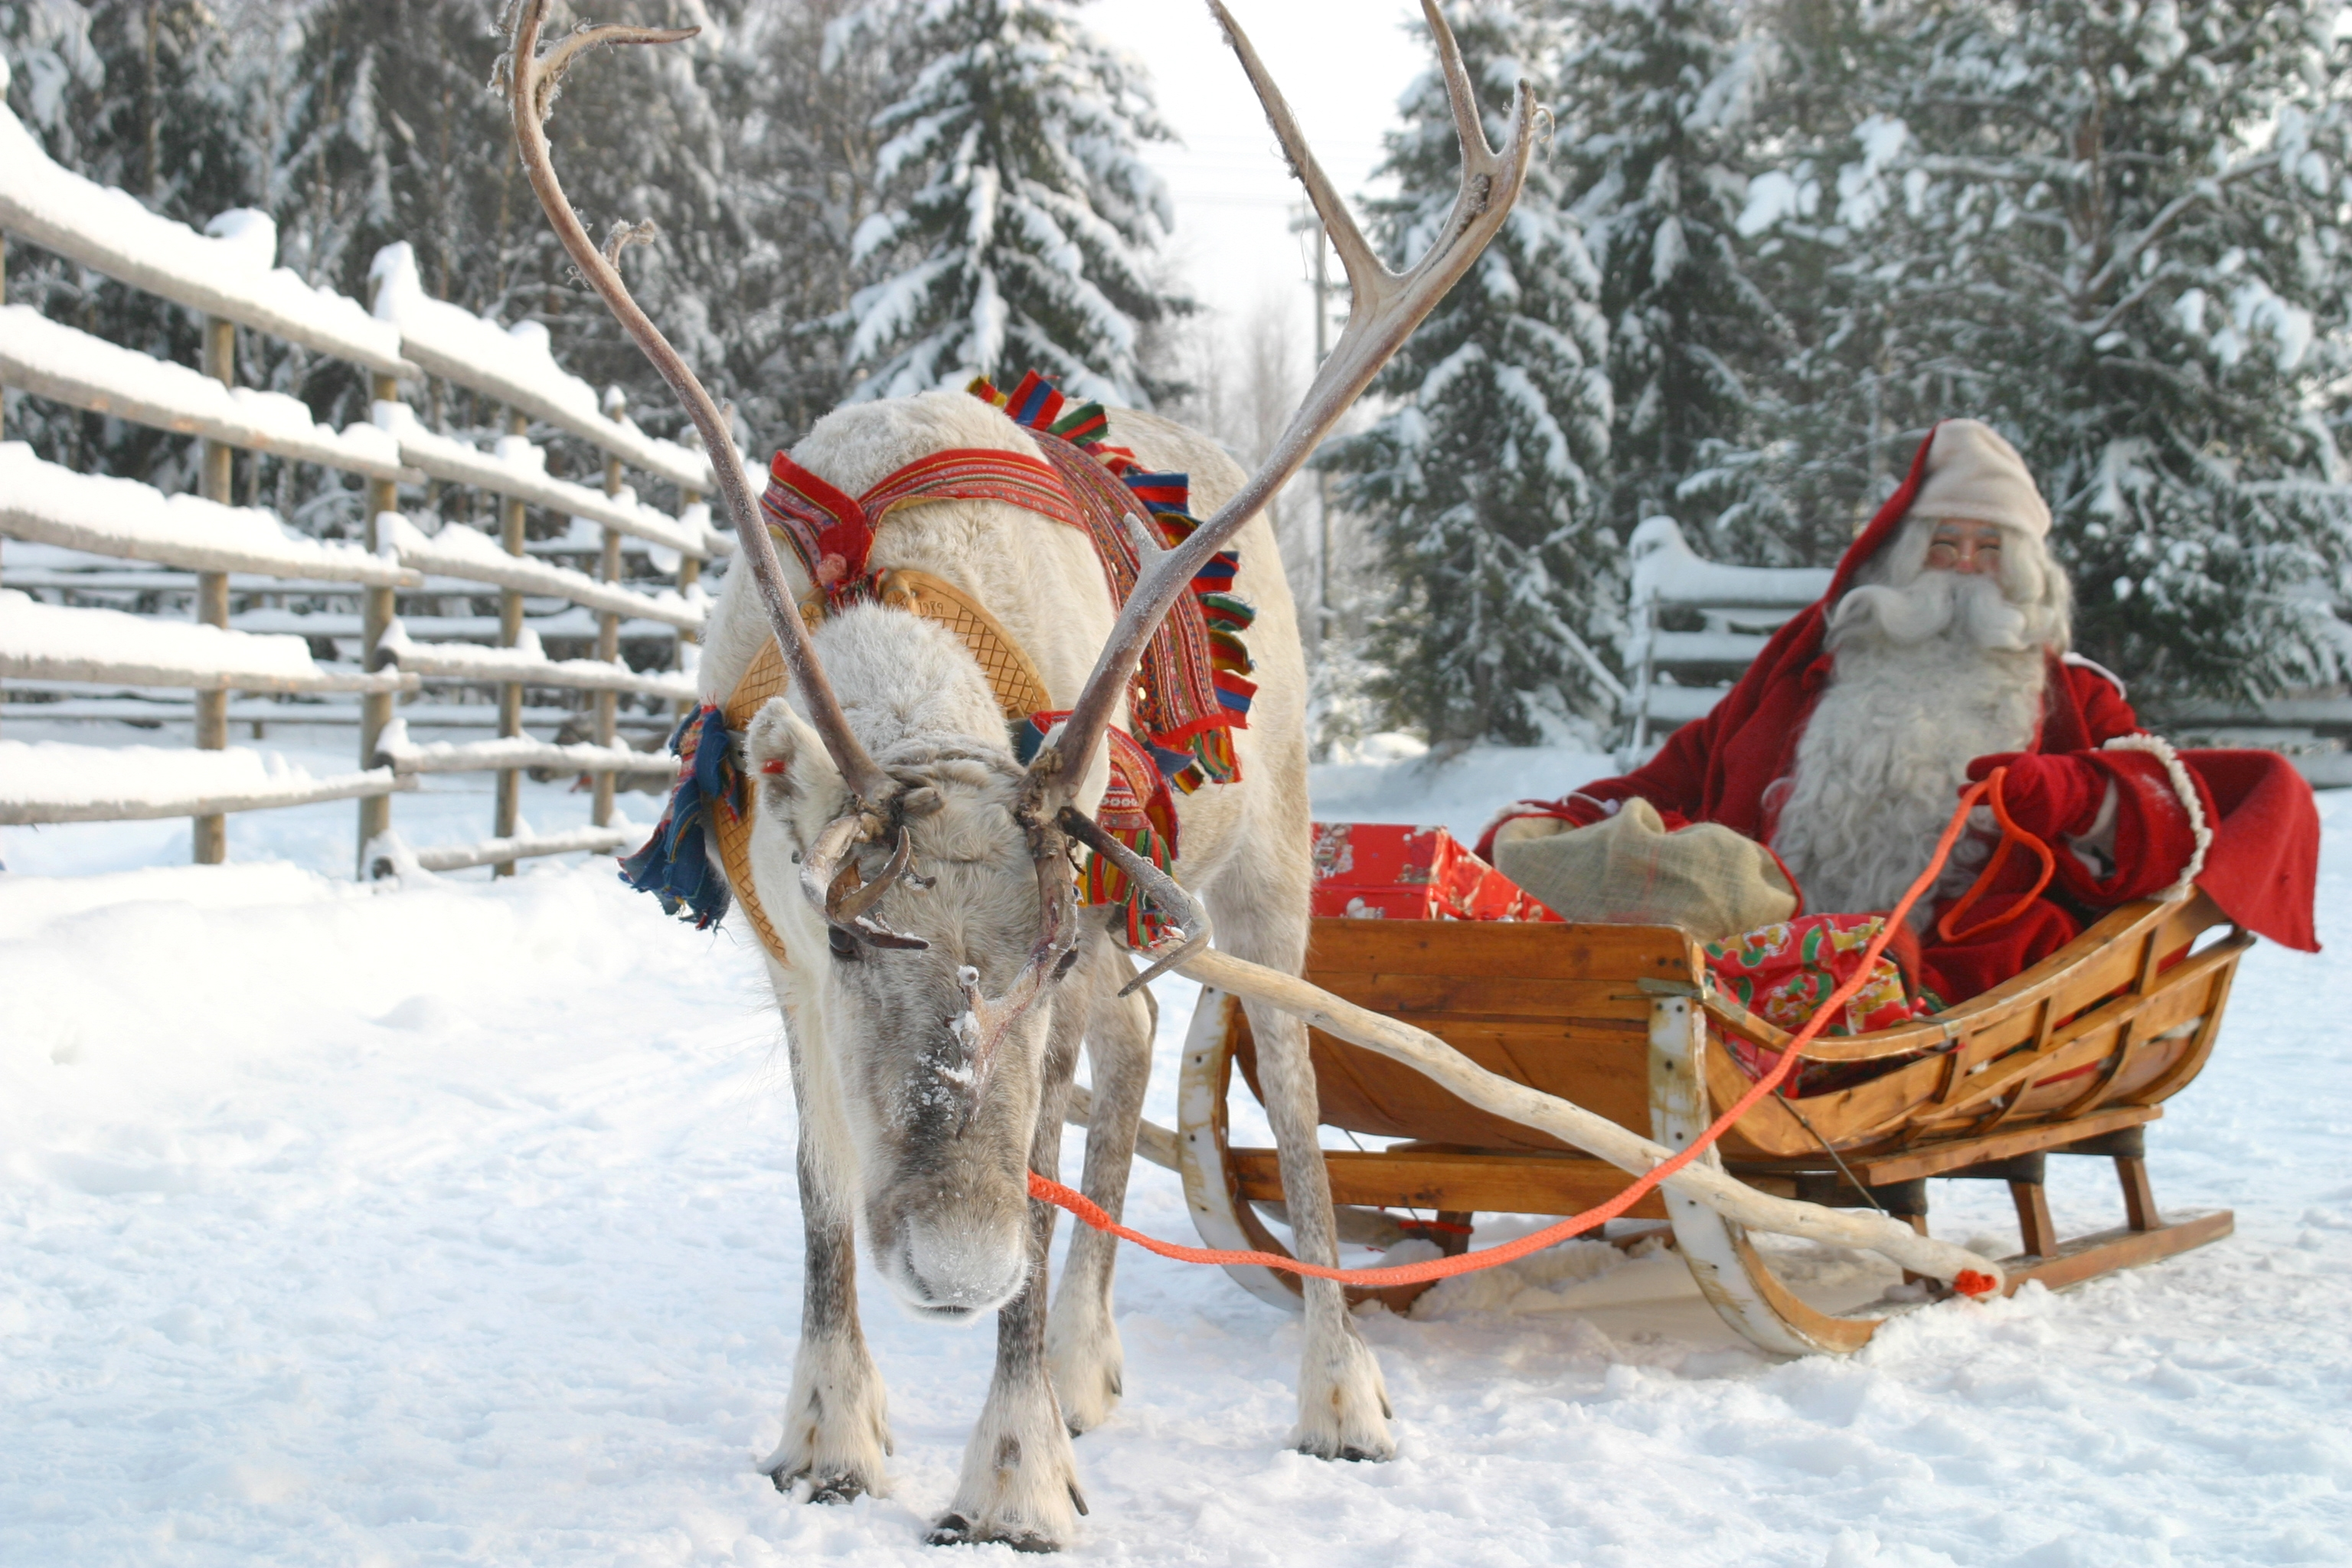 Santa on a sleigh pulled by a reindeer